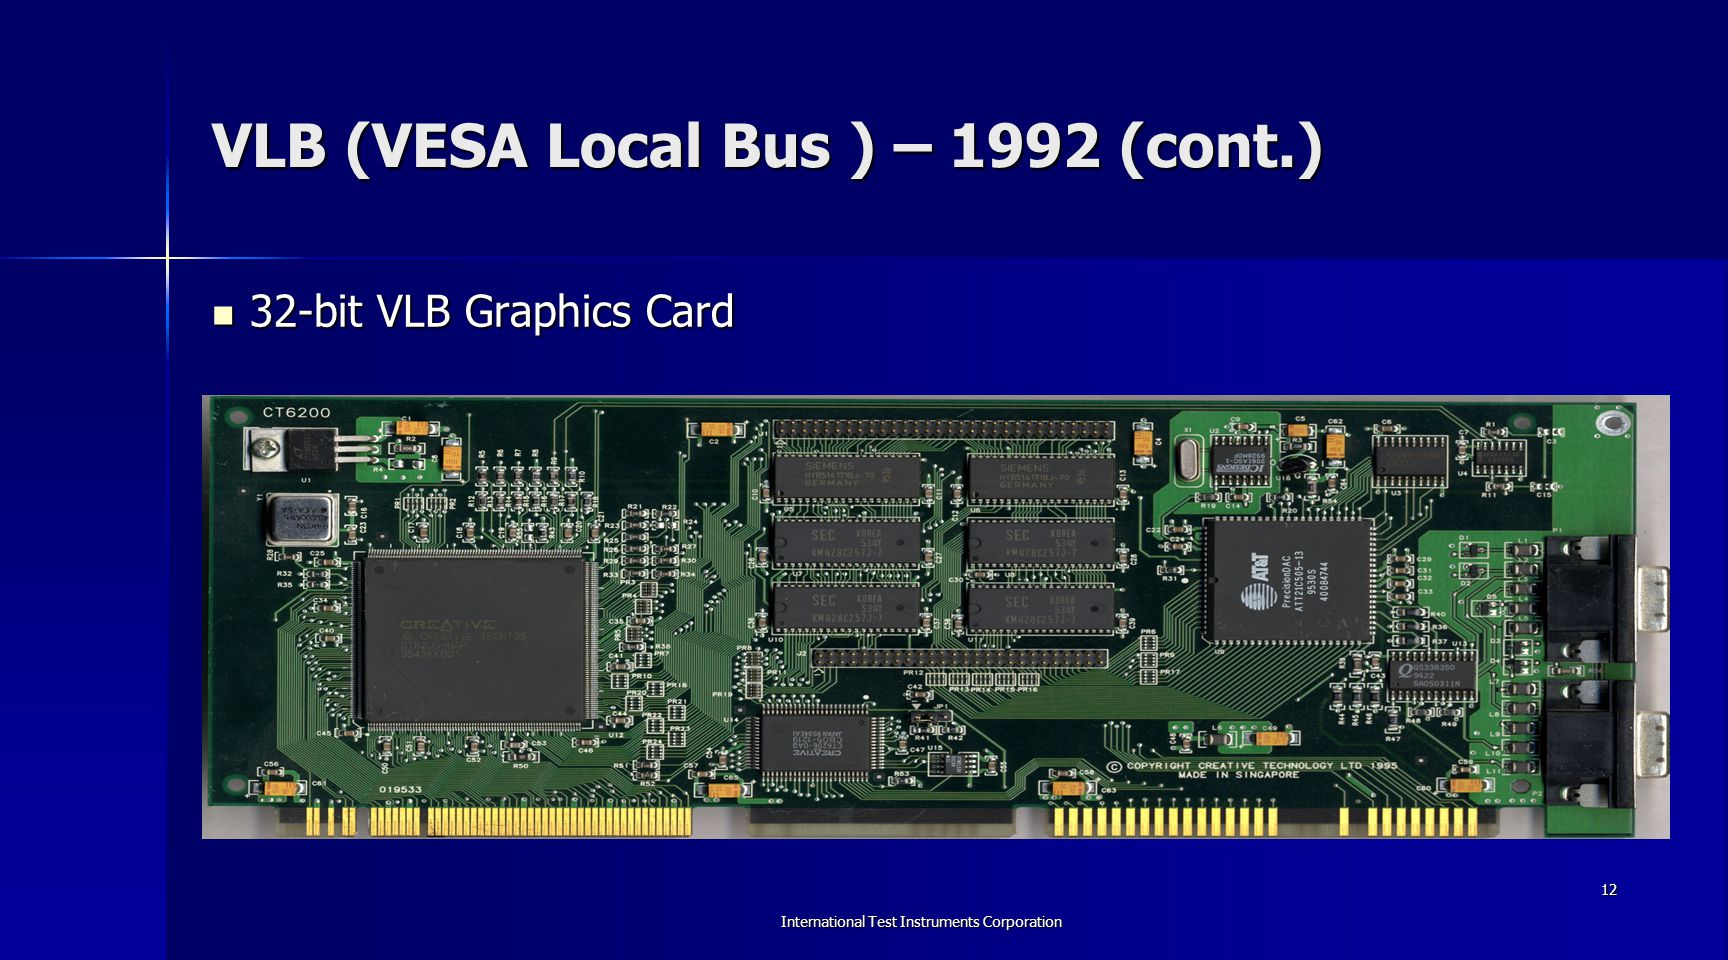 VLB (VESA Local Bus ) – 1992 (cont.)